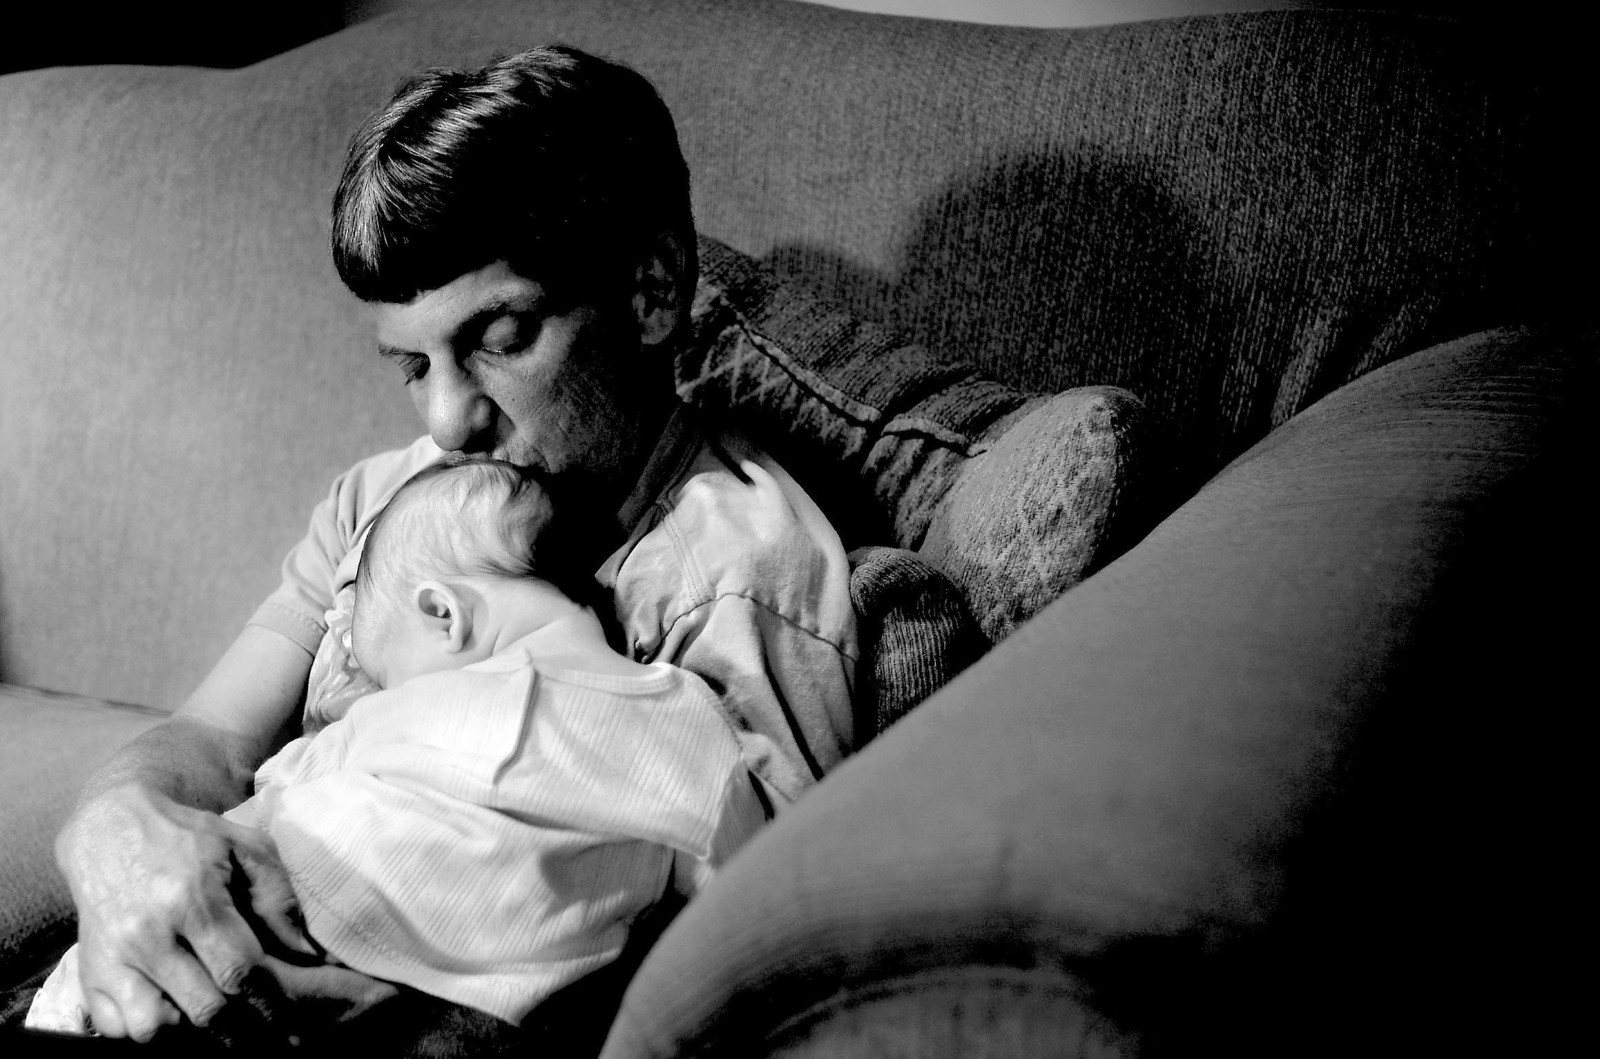 """Mark McGimsey kisses his 3-month-old daughter, Maeghan, on the family's living room. At 4 feet 8¬Ohm inches tall, McGimsey is a dwarf, and the condition has caused him significant medical problems. """"The disability has allowed me to be a stay-at-home dad,"""" he said. """"I had a great job, but it pales in comparison to being able to stay home with my children. There's nothing better than a sleeping baby on your chest."""""""